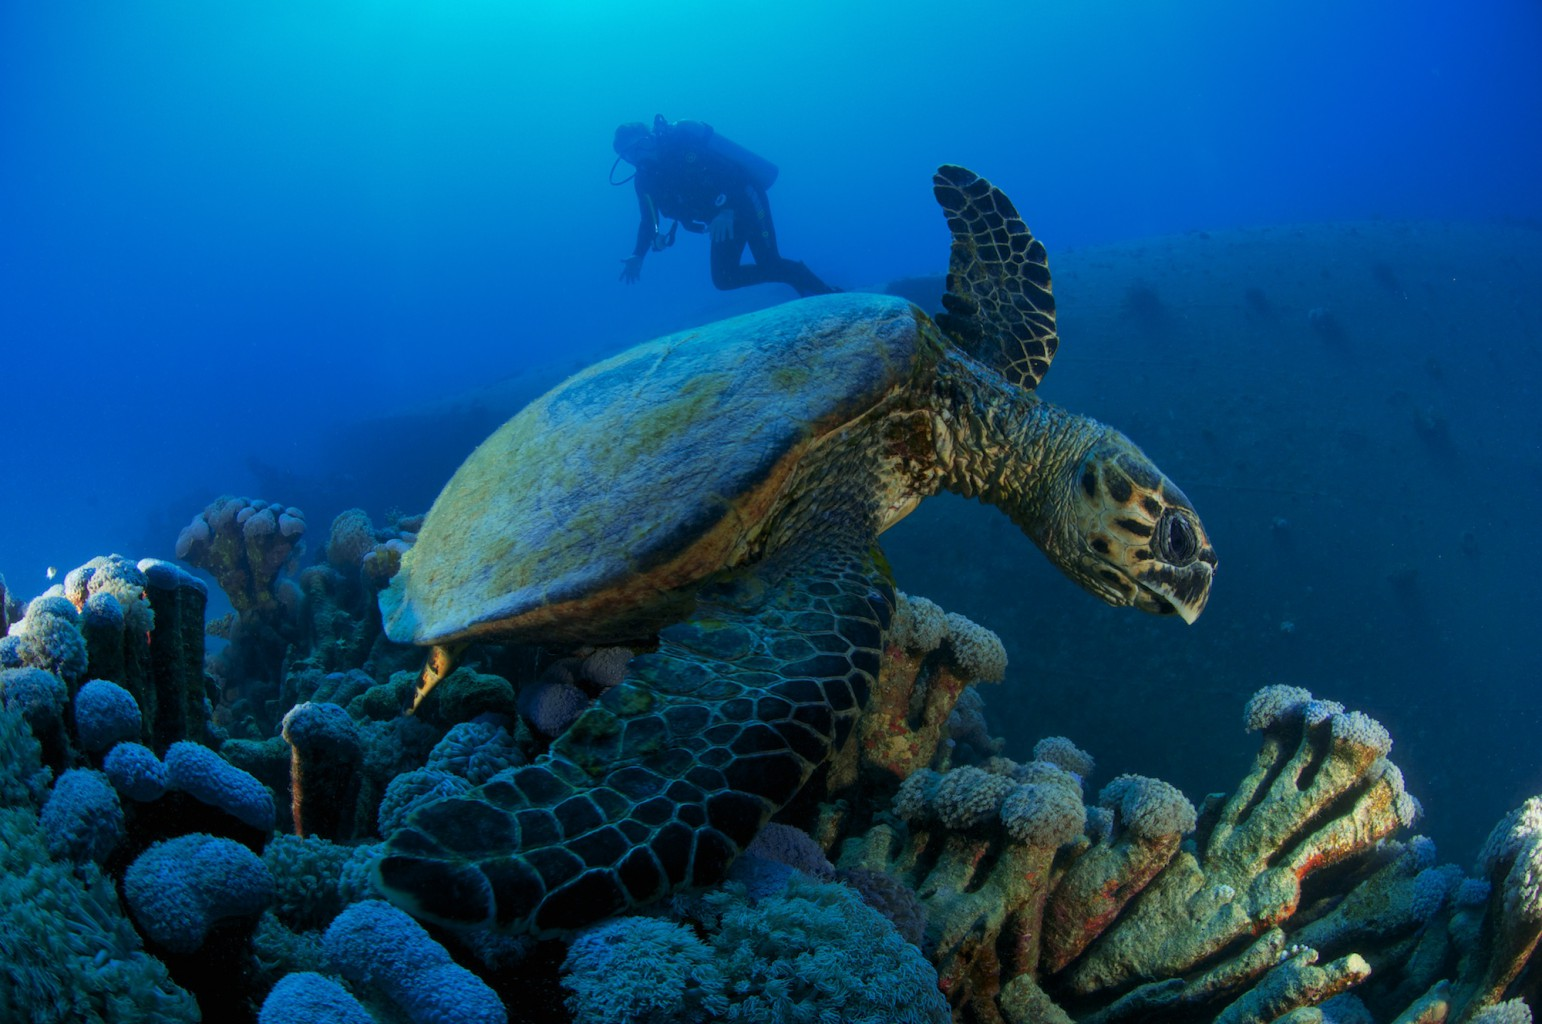 Sea Turtle, Abu Ghusun, southern Red Sea, Egypt